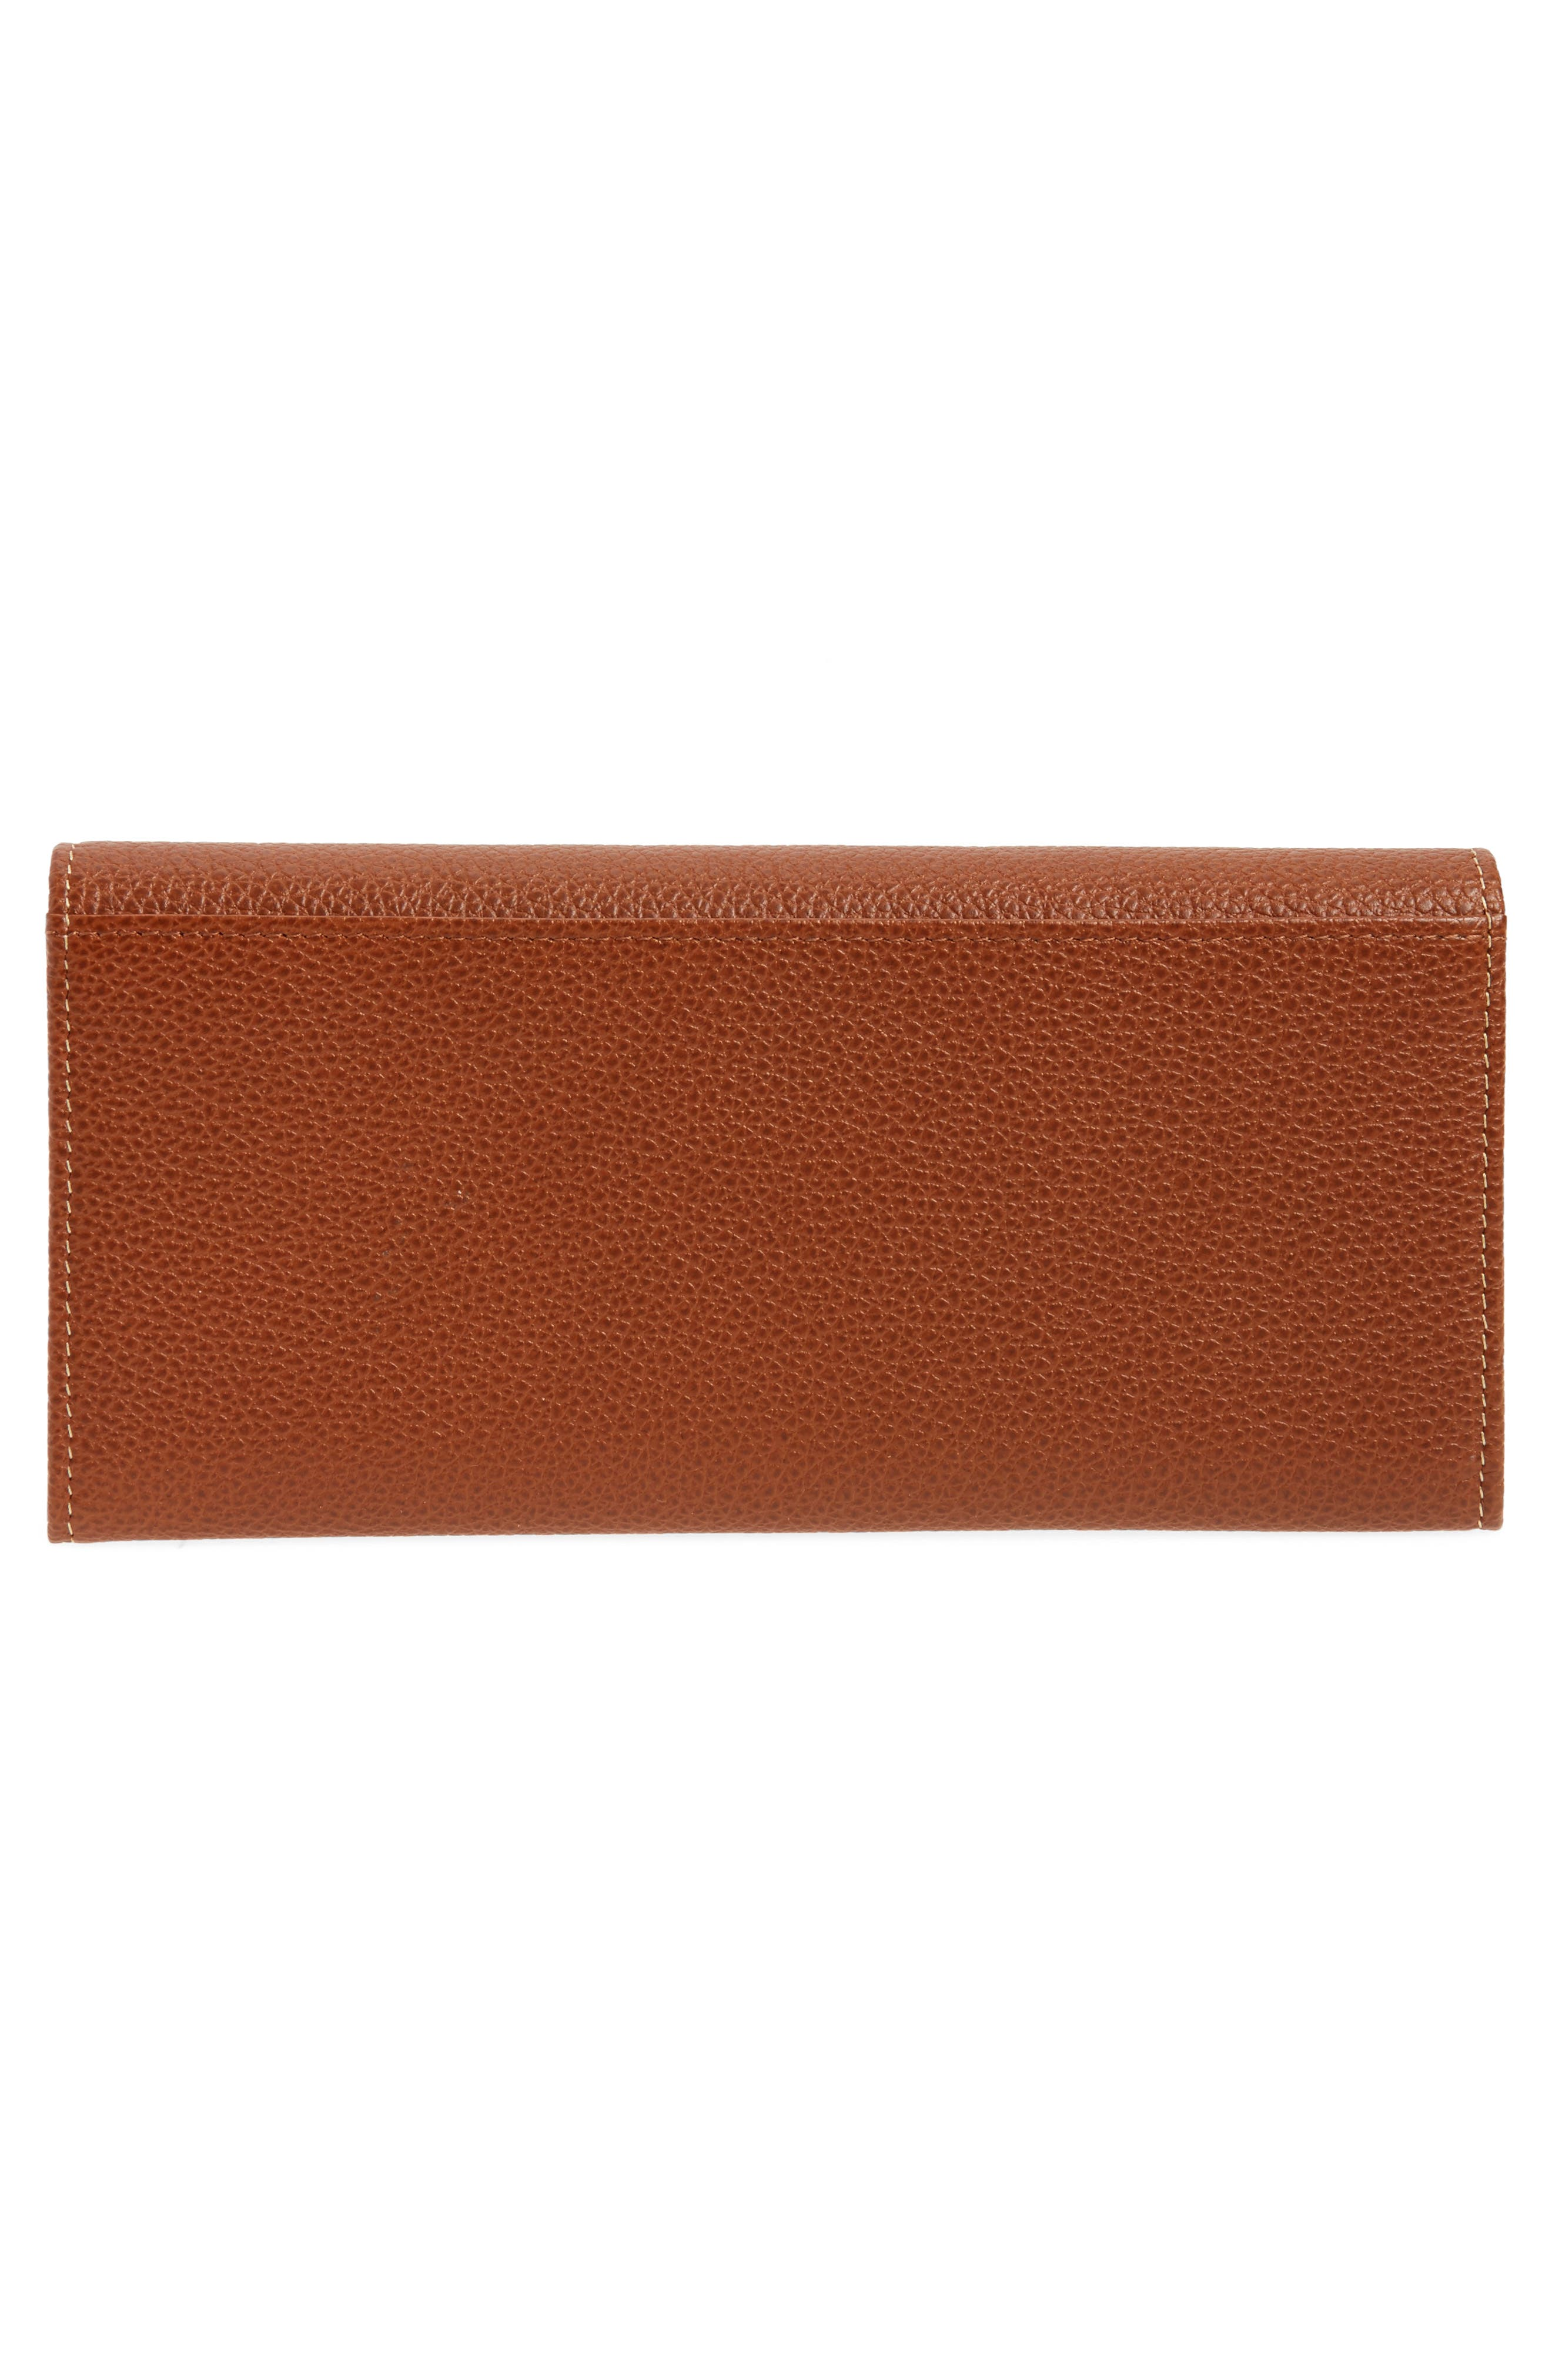 LONGCHAMP, 'Veau' Continental Wallet, Alternate thumbnail 3, color, COGNAC